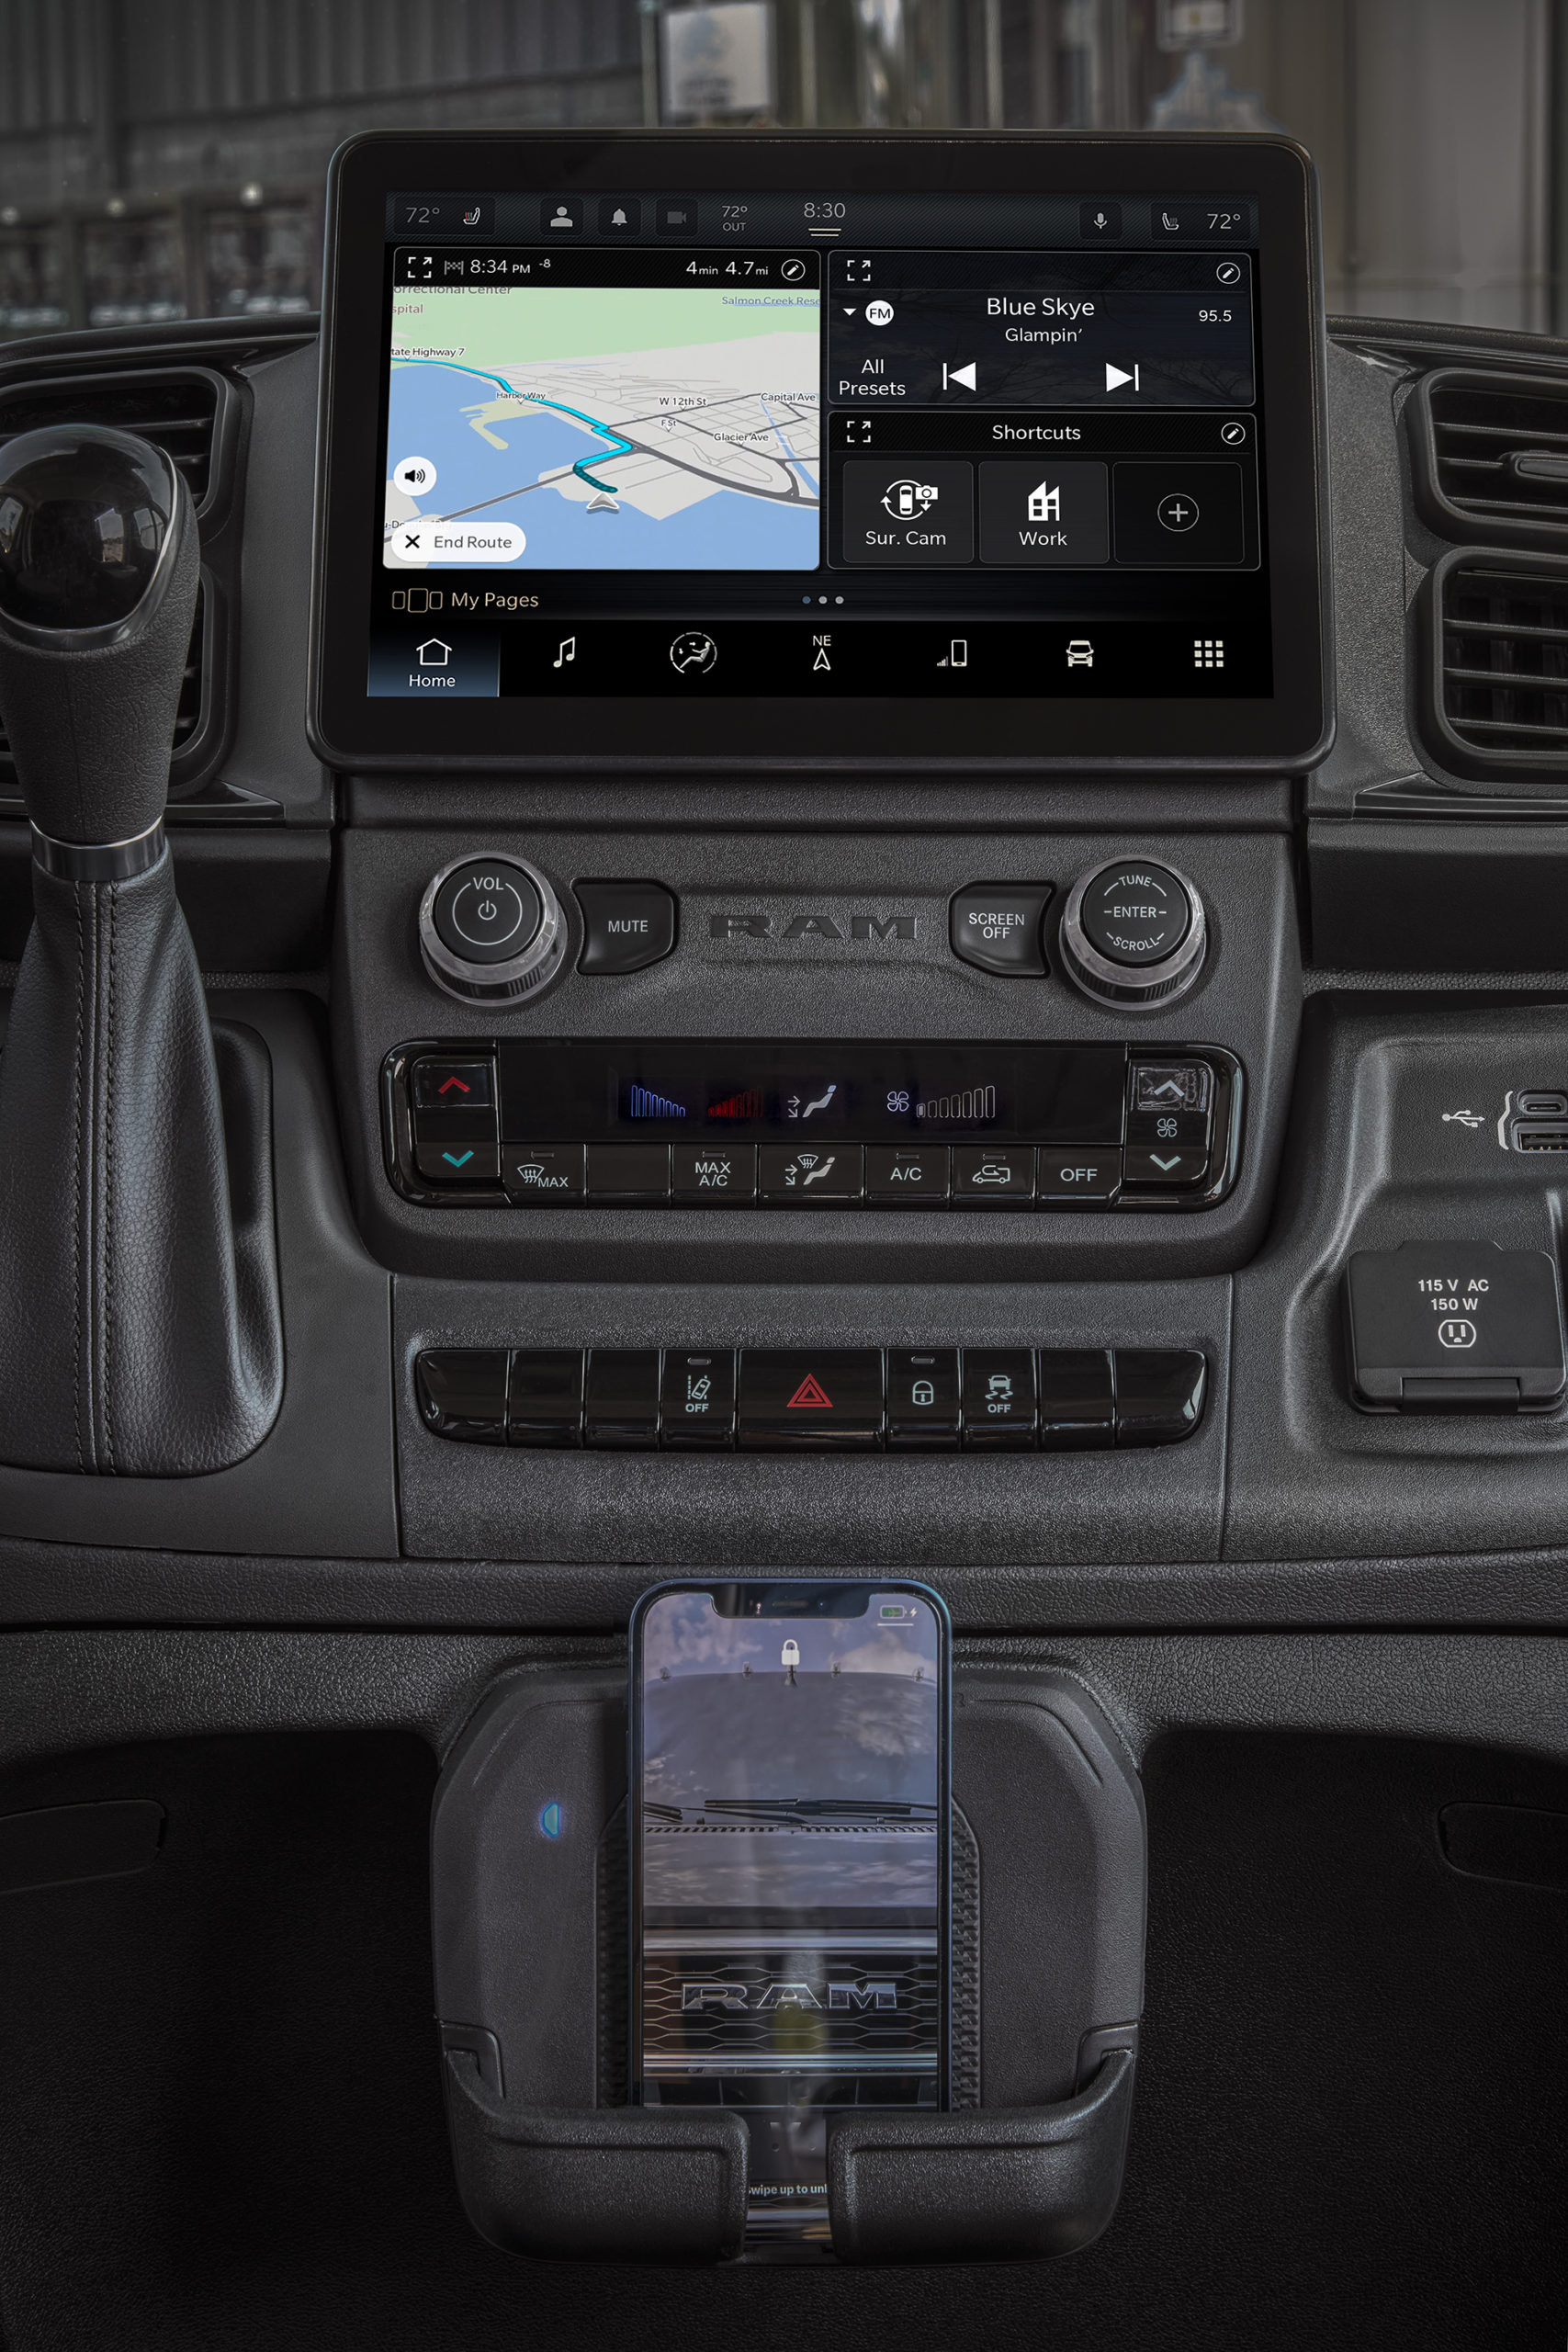 2022 Ram ProMaster 3500 Interior with wireless charging pad